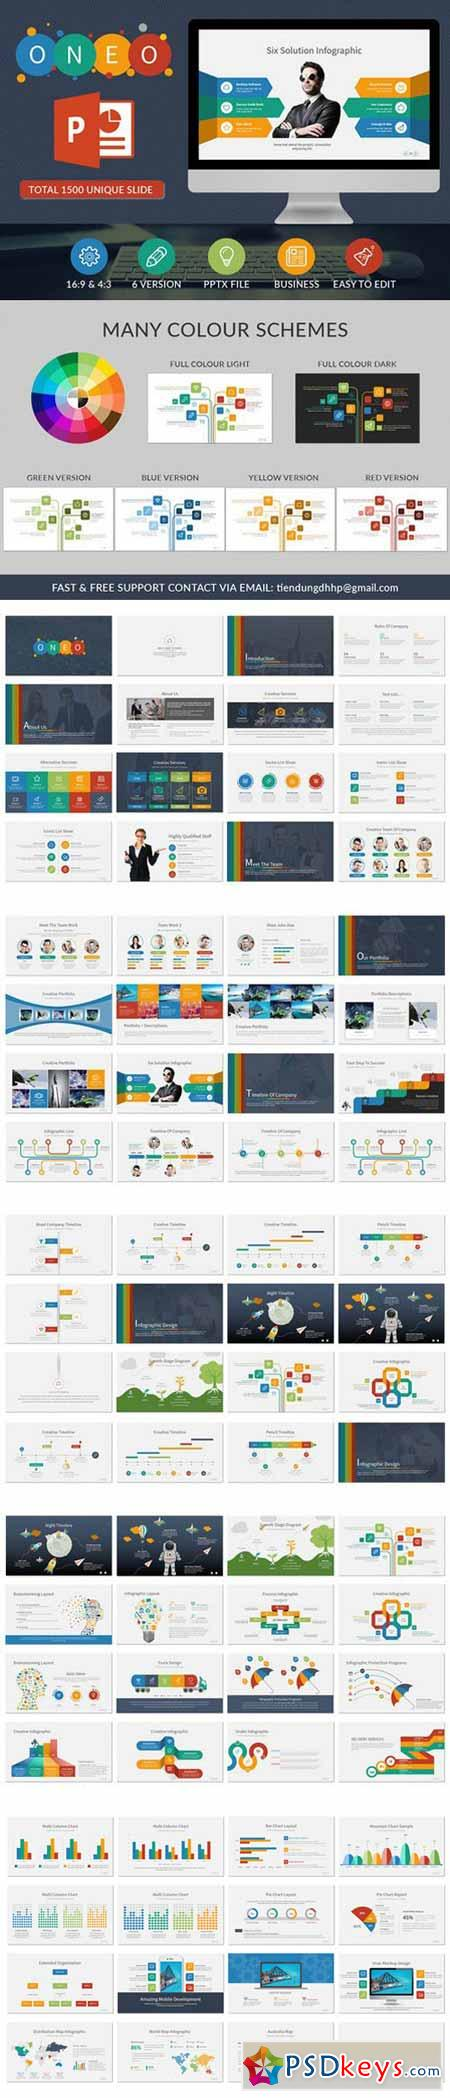 ONEO Powerpoint Presentation 567990